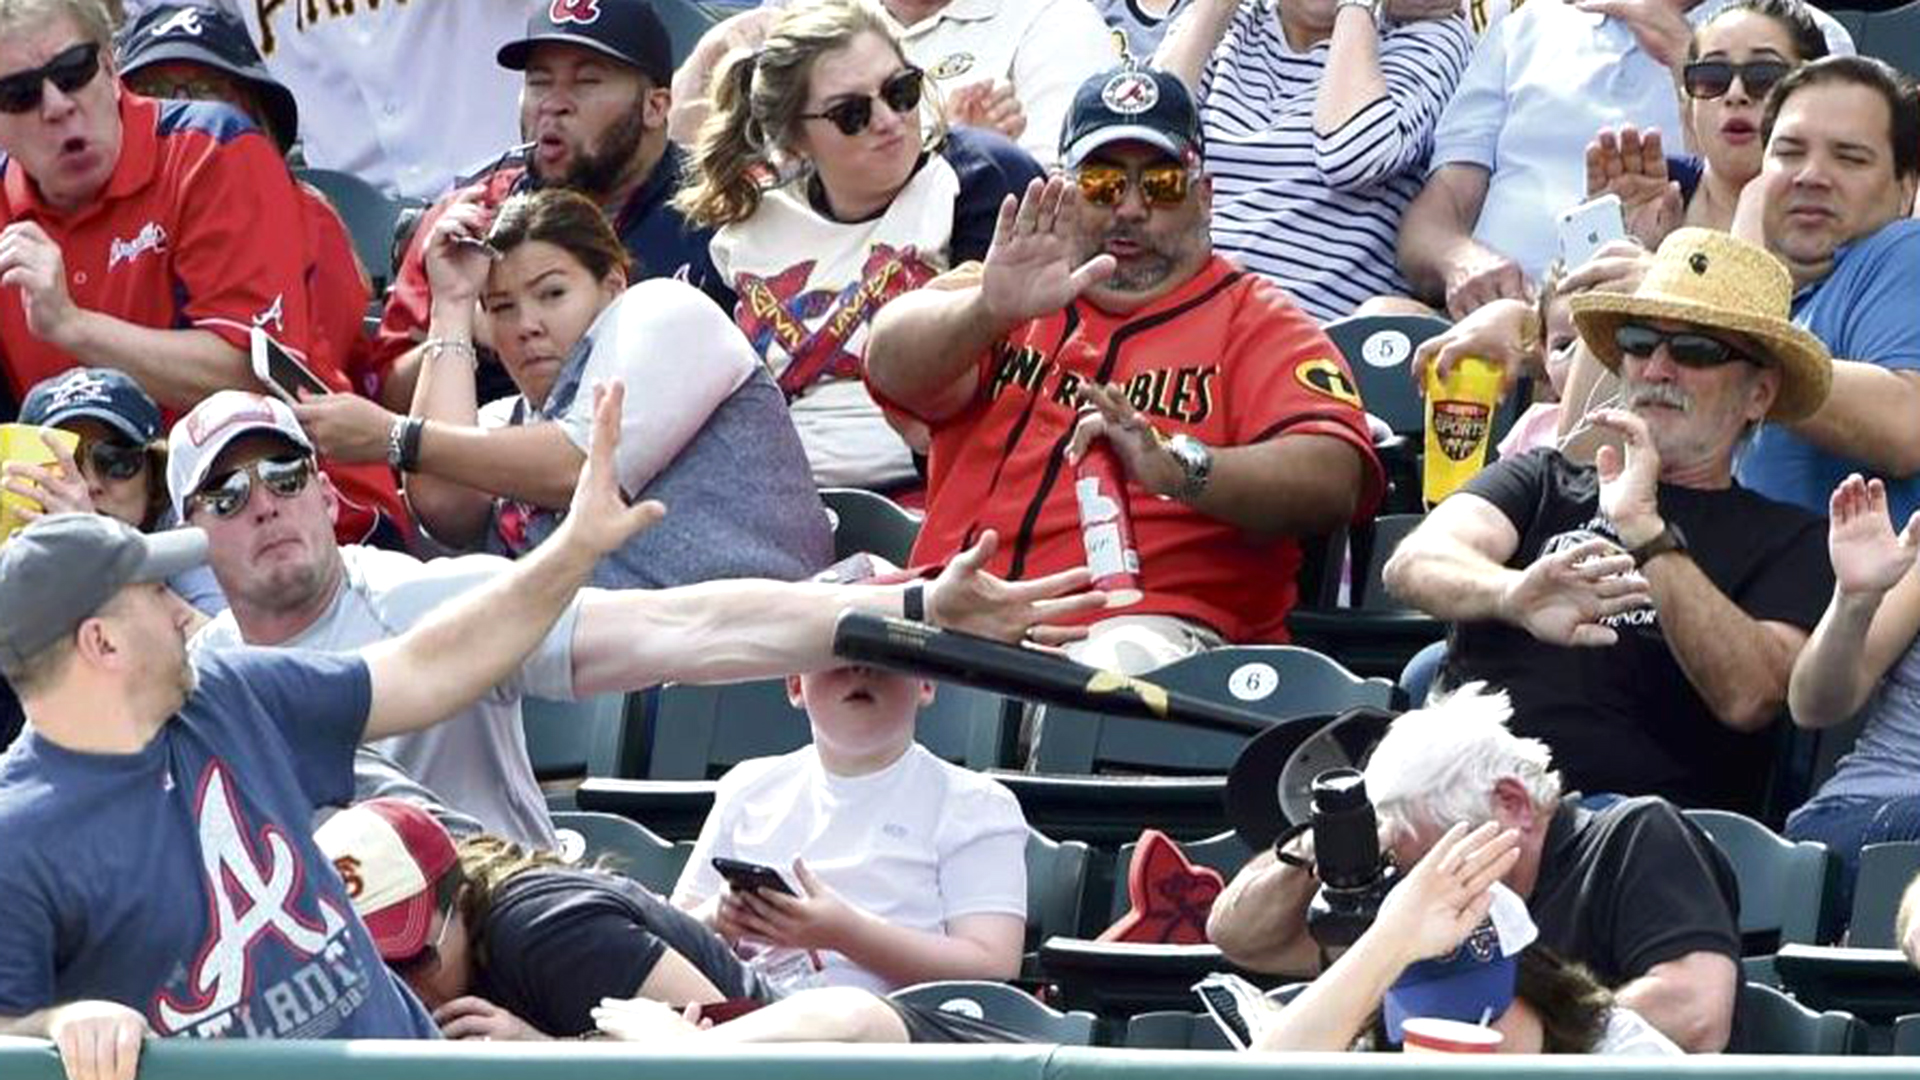 Fan saves boy from getting smacked in the face with baseball bat: See the  moment